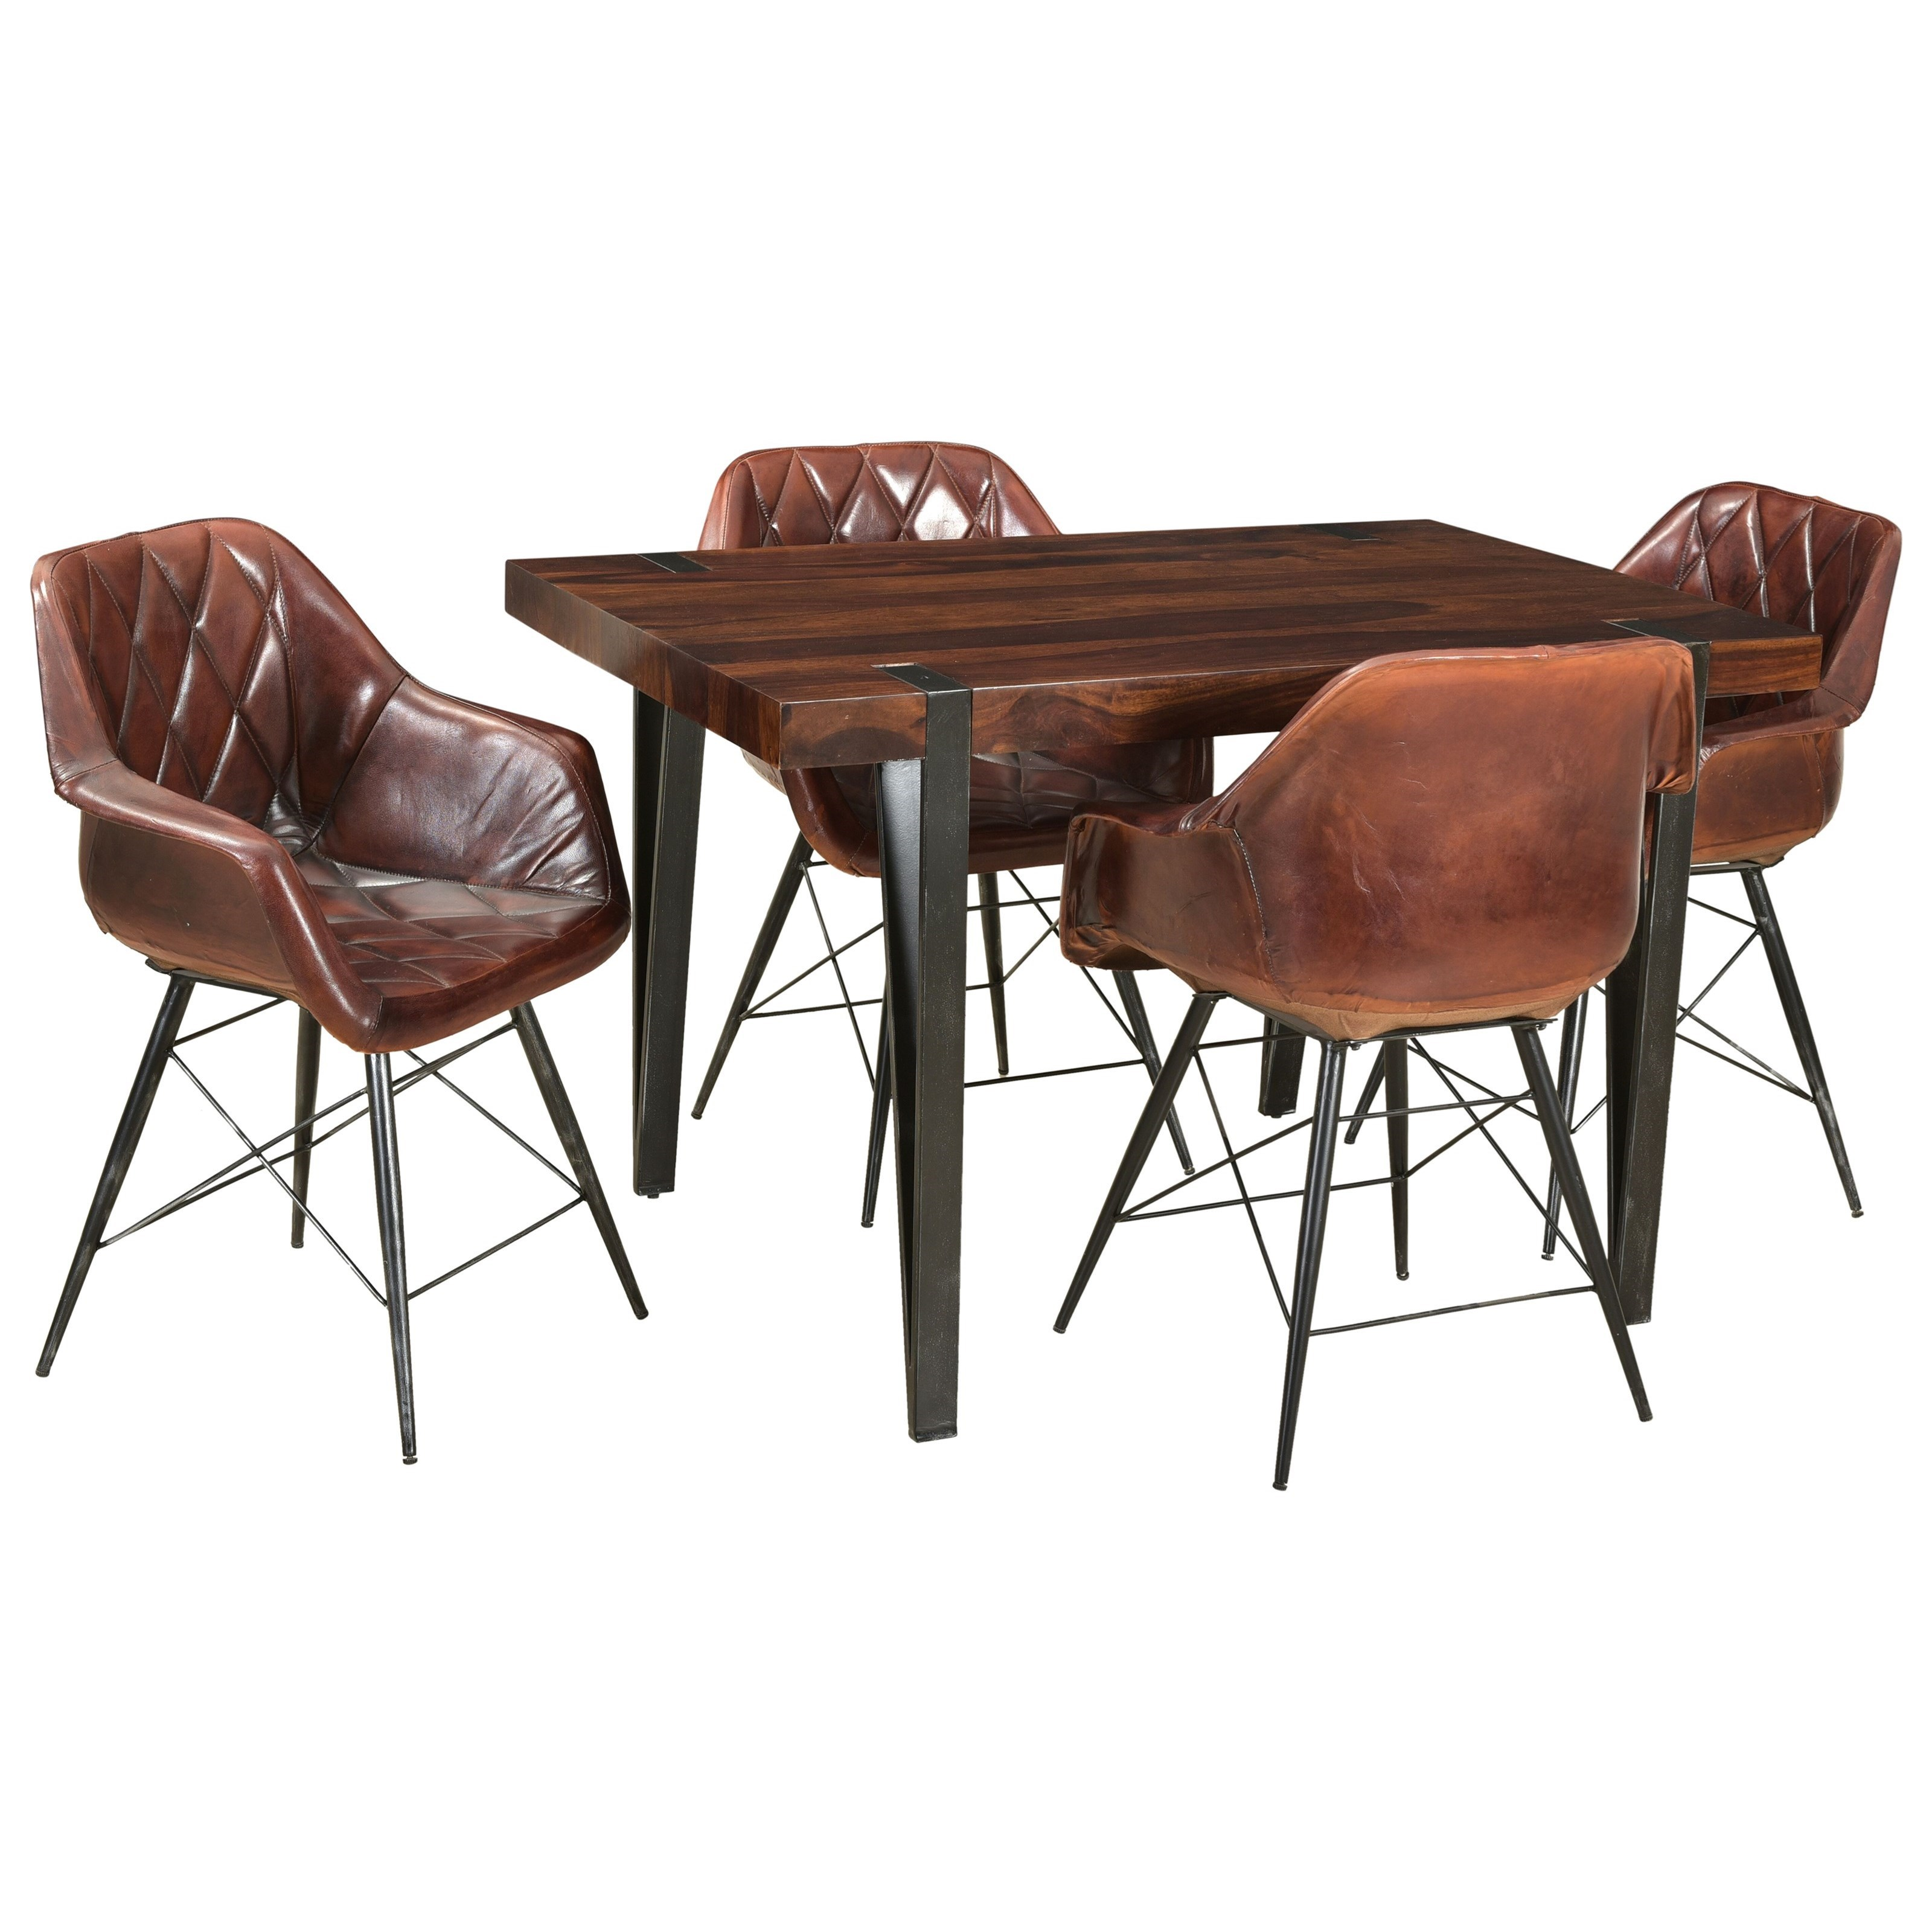 5-Piece Table and Arm Chair Set